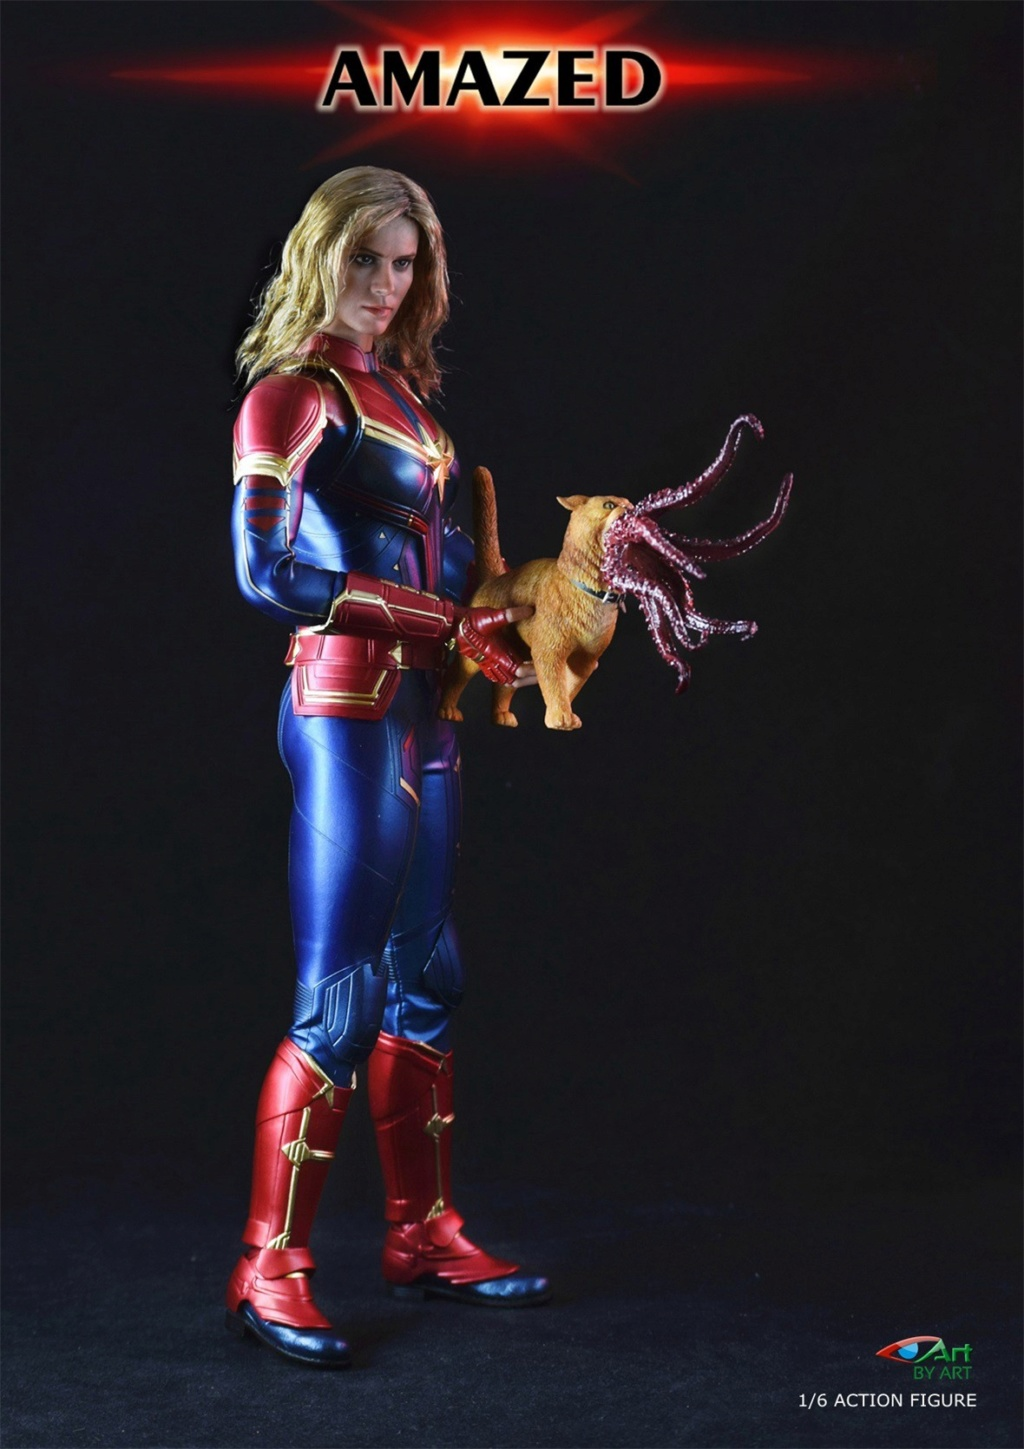 Female - NEW PRODUCT: BY-Art: 1/6 AMAZED amazing female action figure BY-012 12020611